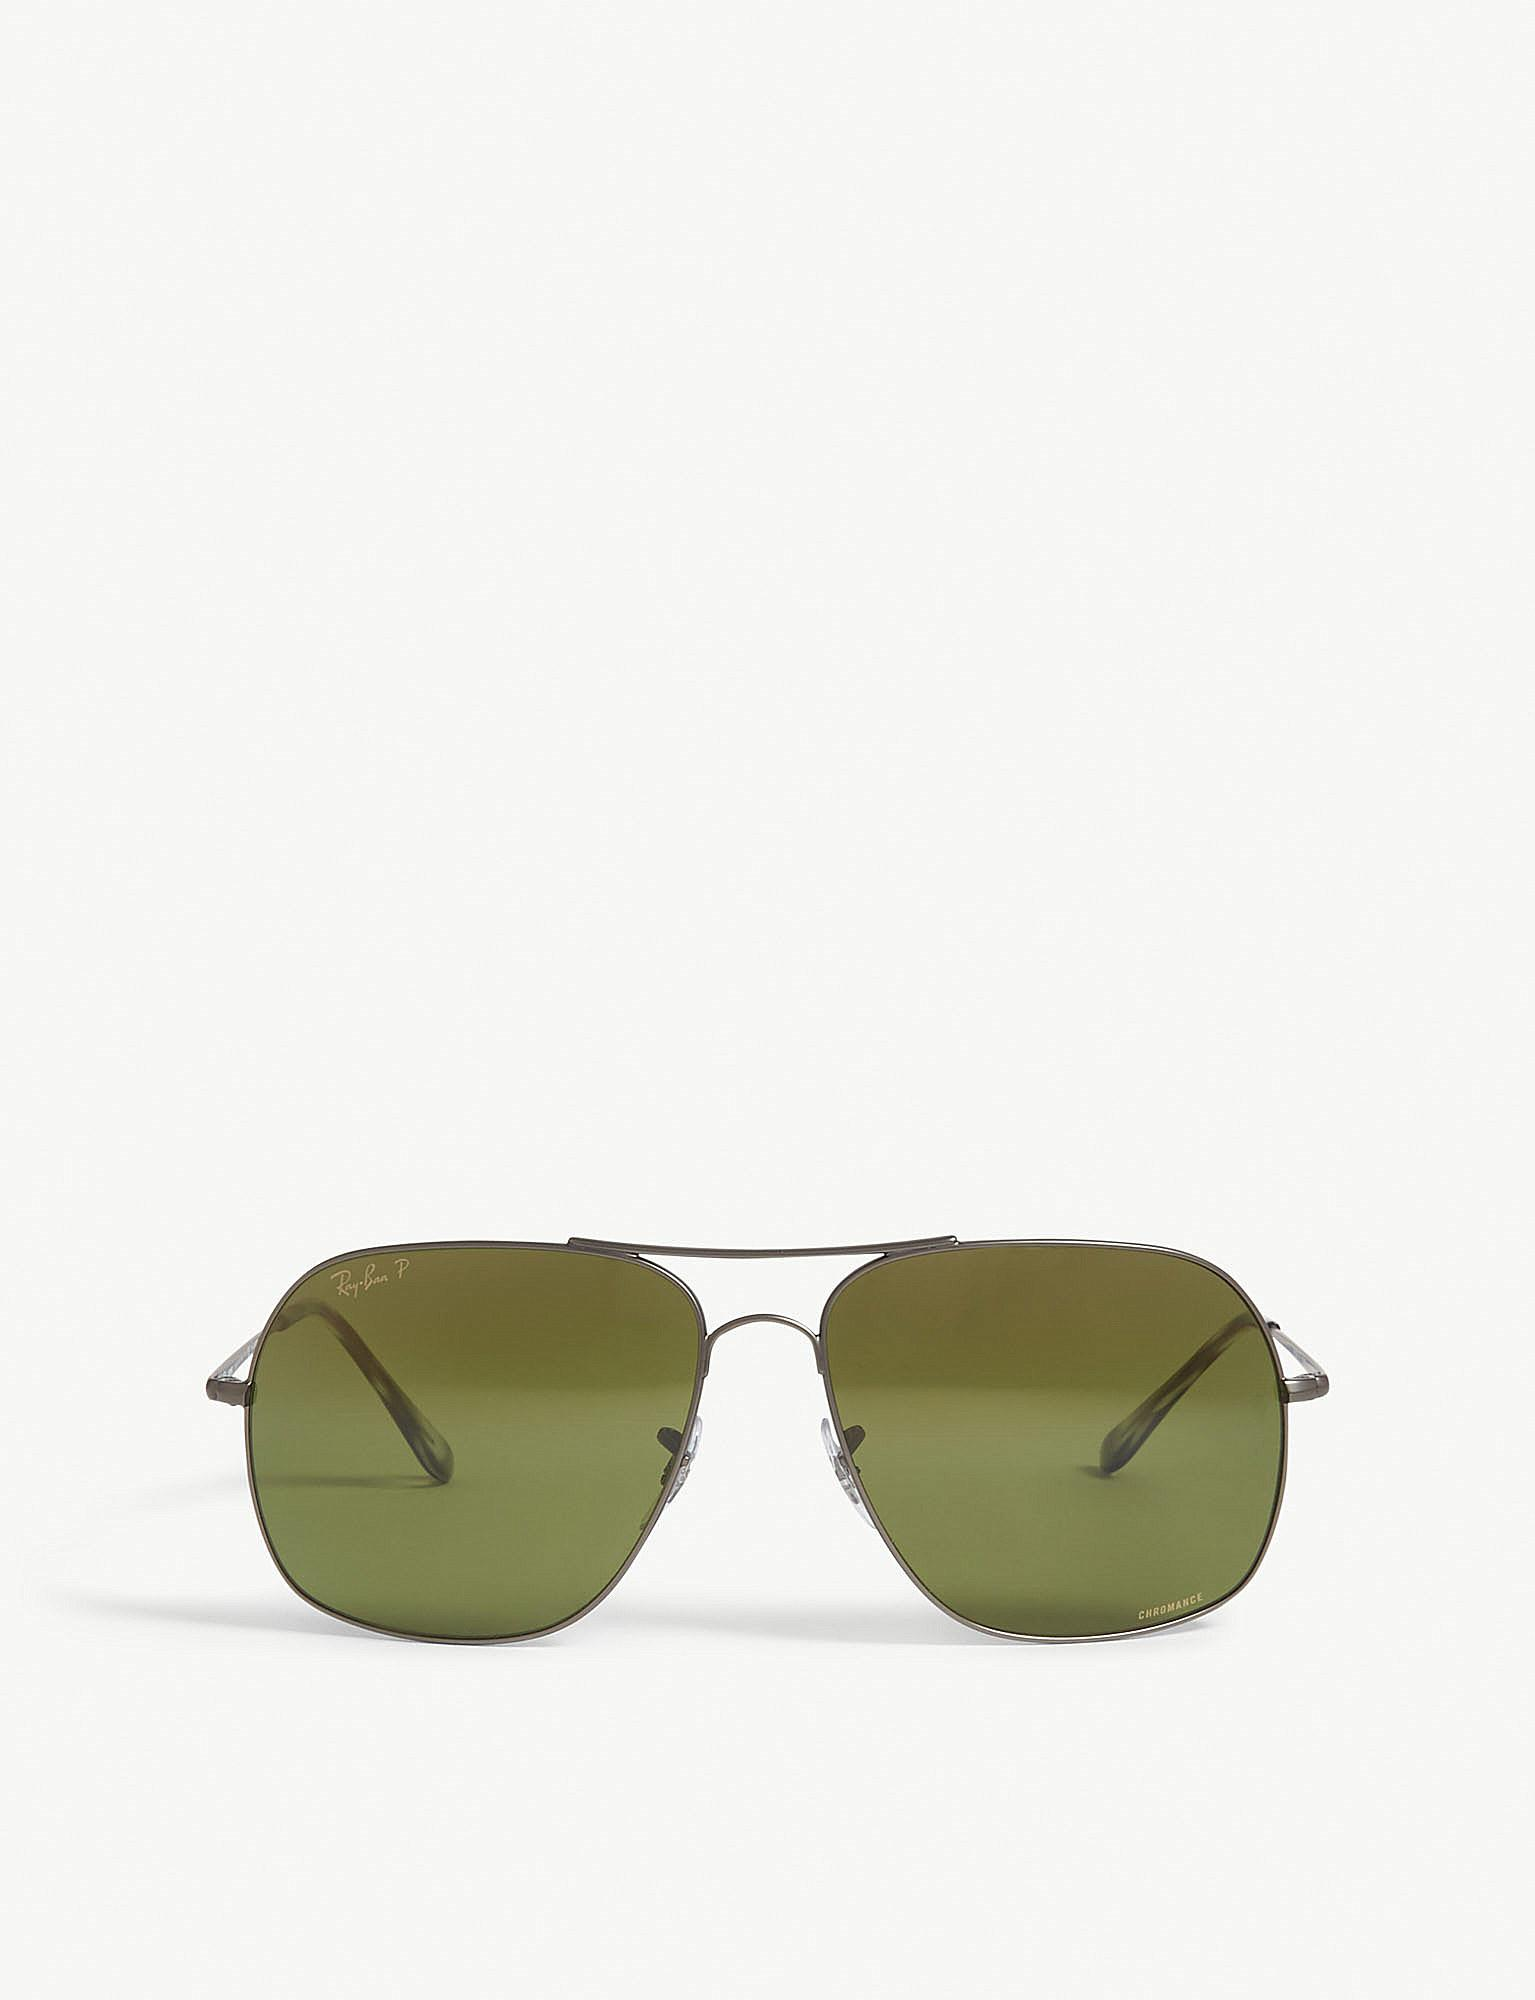 8c2c00c9ce8 Lyst - Ray-Ban Rb3587 Chromance Square-frame Sunglasses in Green